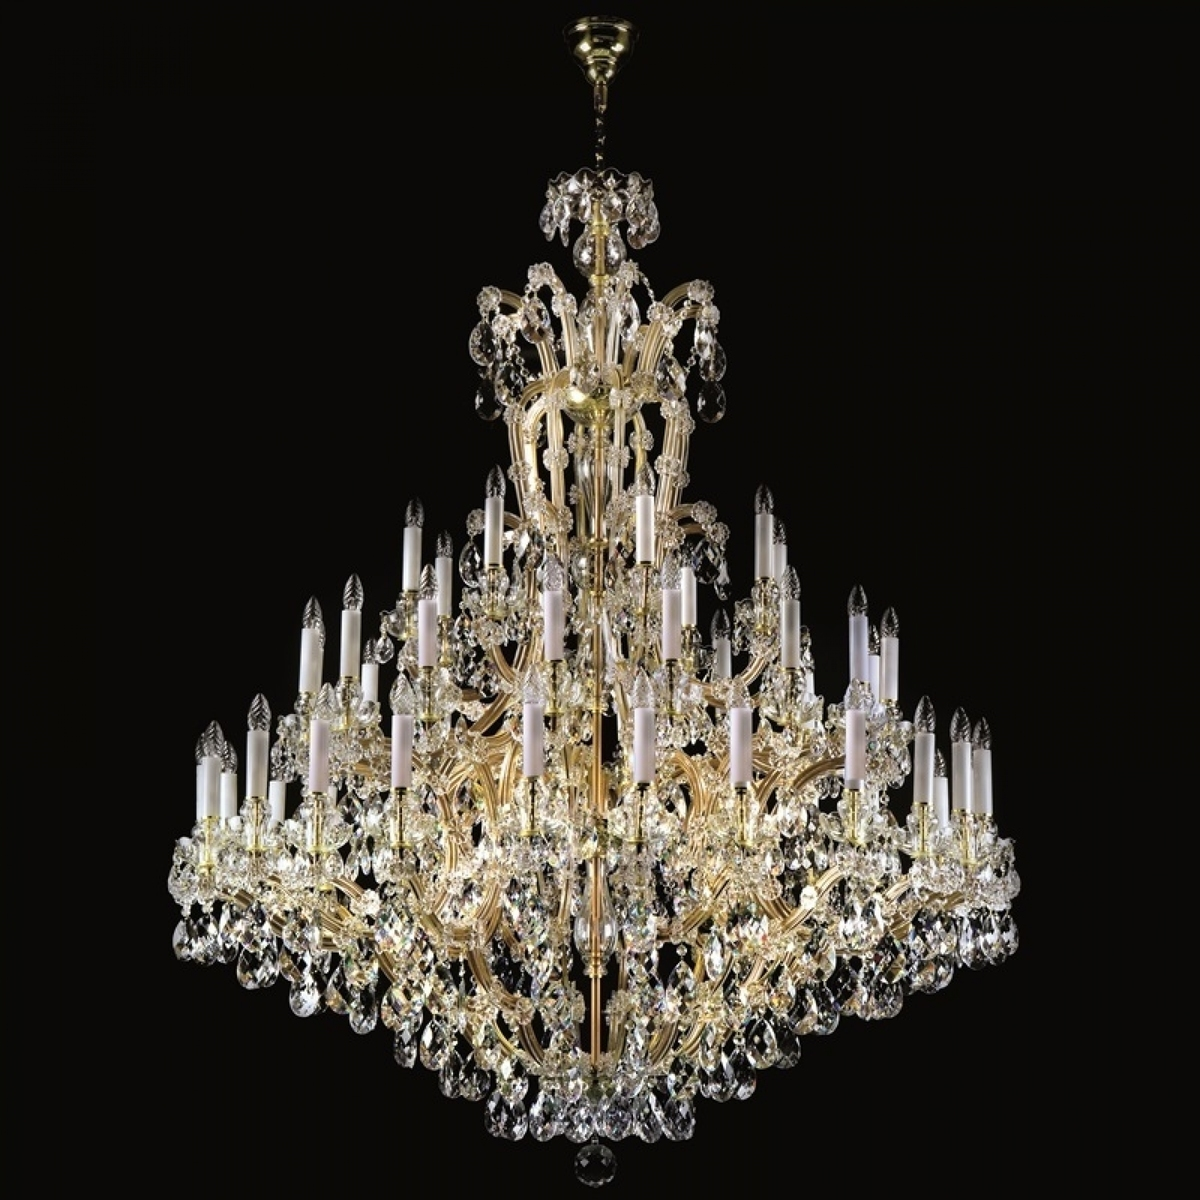 Large Crystal Chandelier MARIA TEREZIA 19